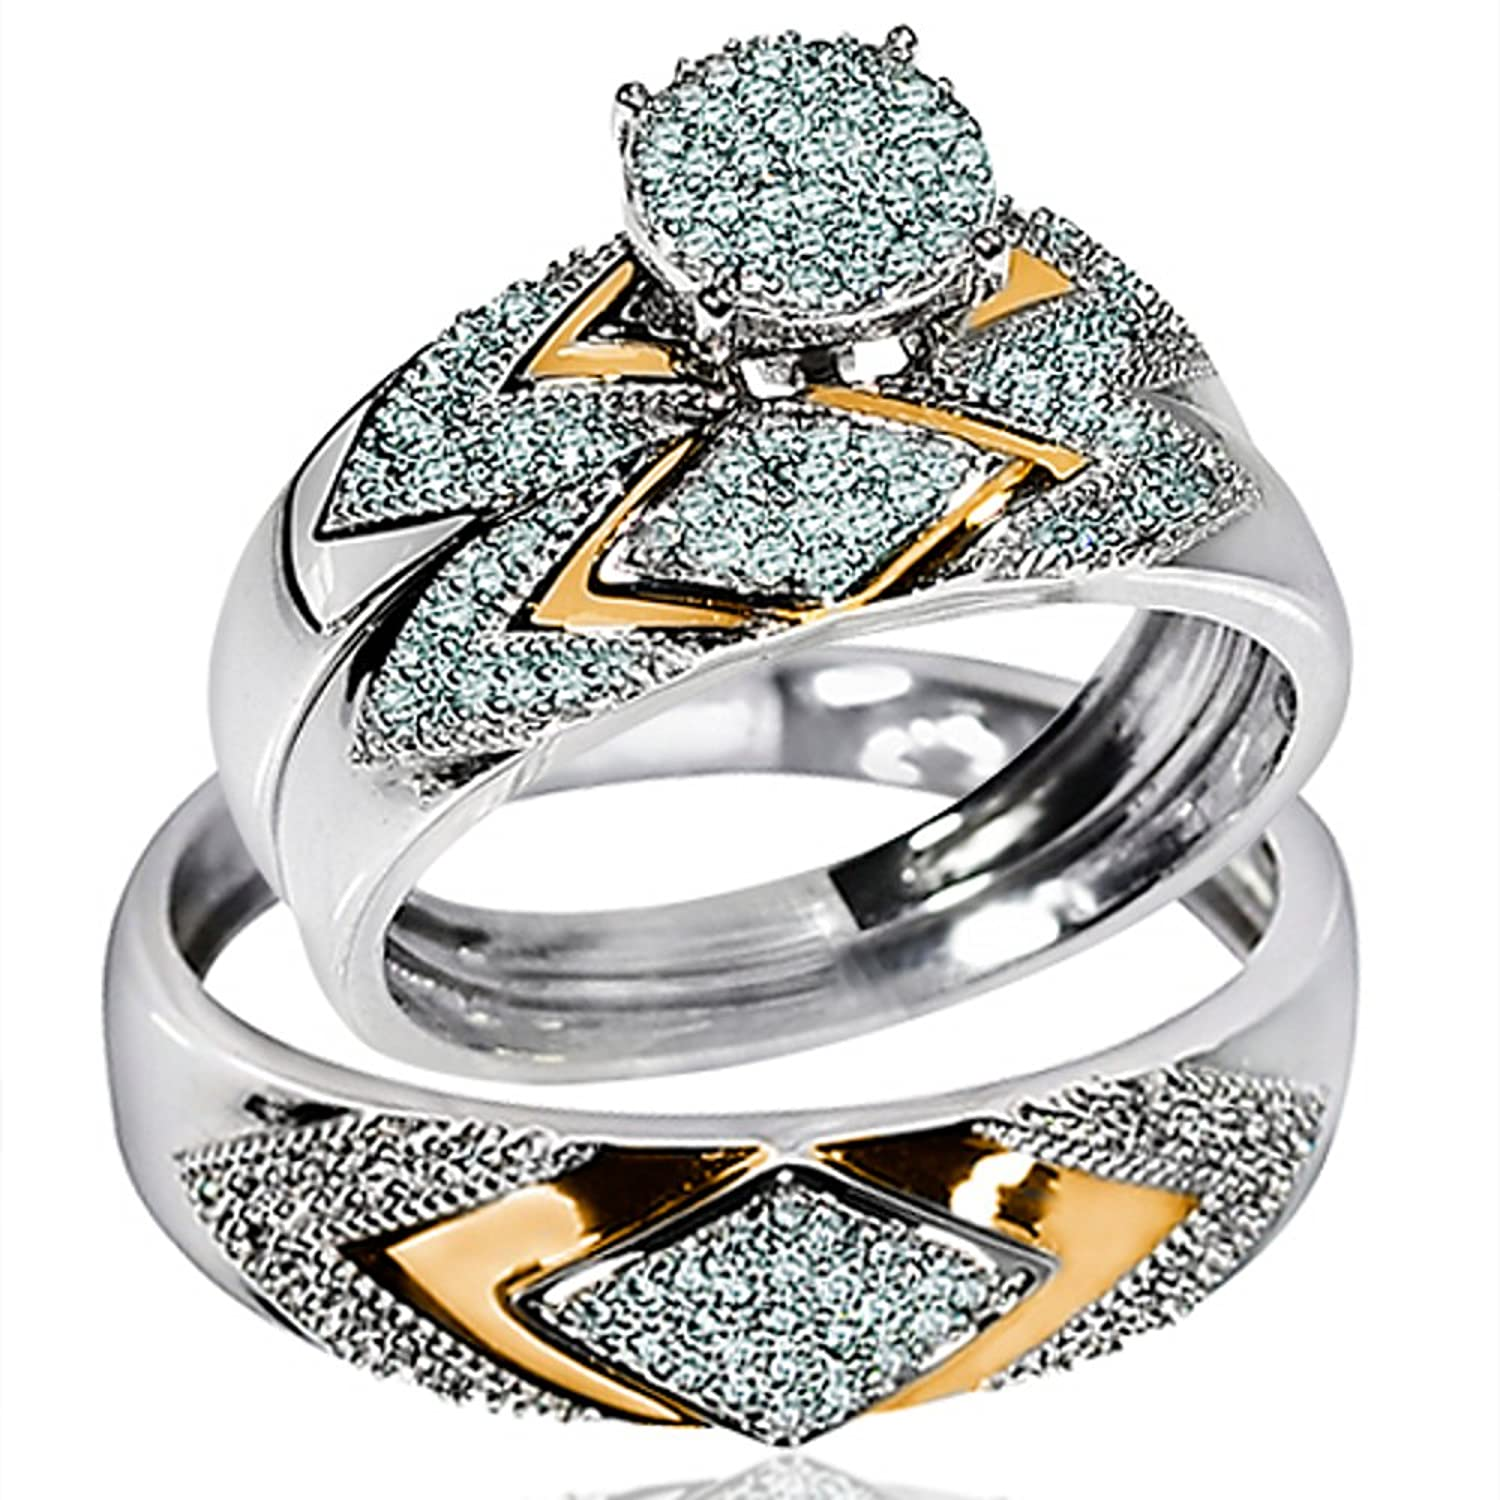 Amazon His Her Wedding Rings Set Trio Men Women 14k White Gold Two Tone I2 I3 Clarity I J Color Jewelry